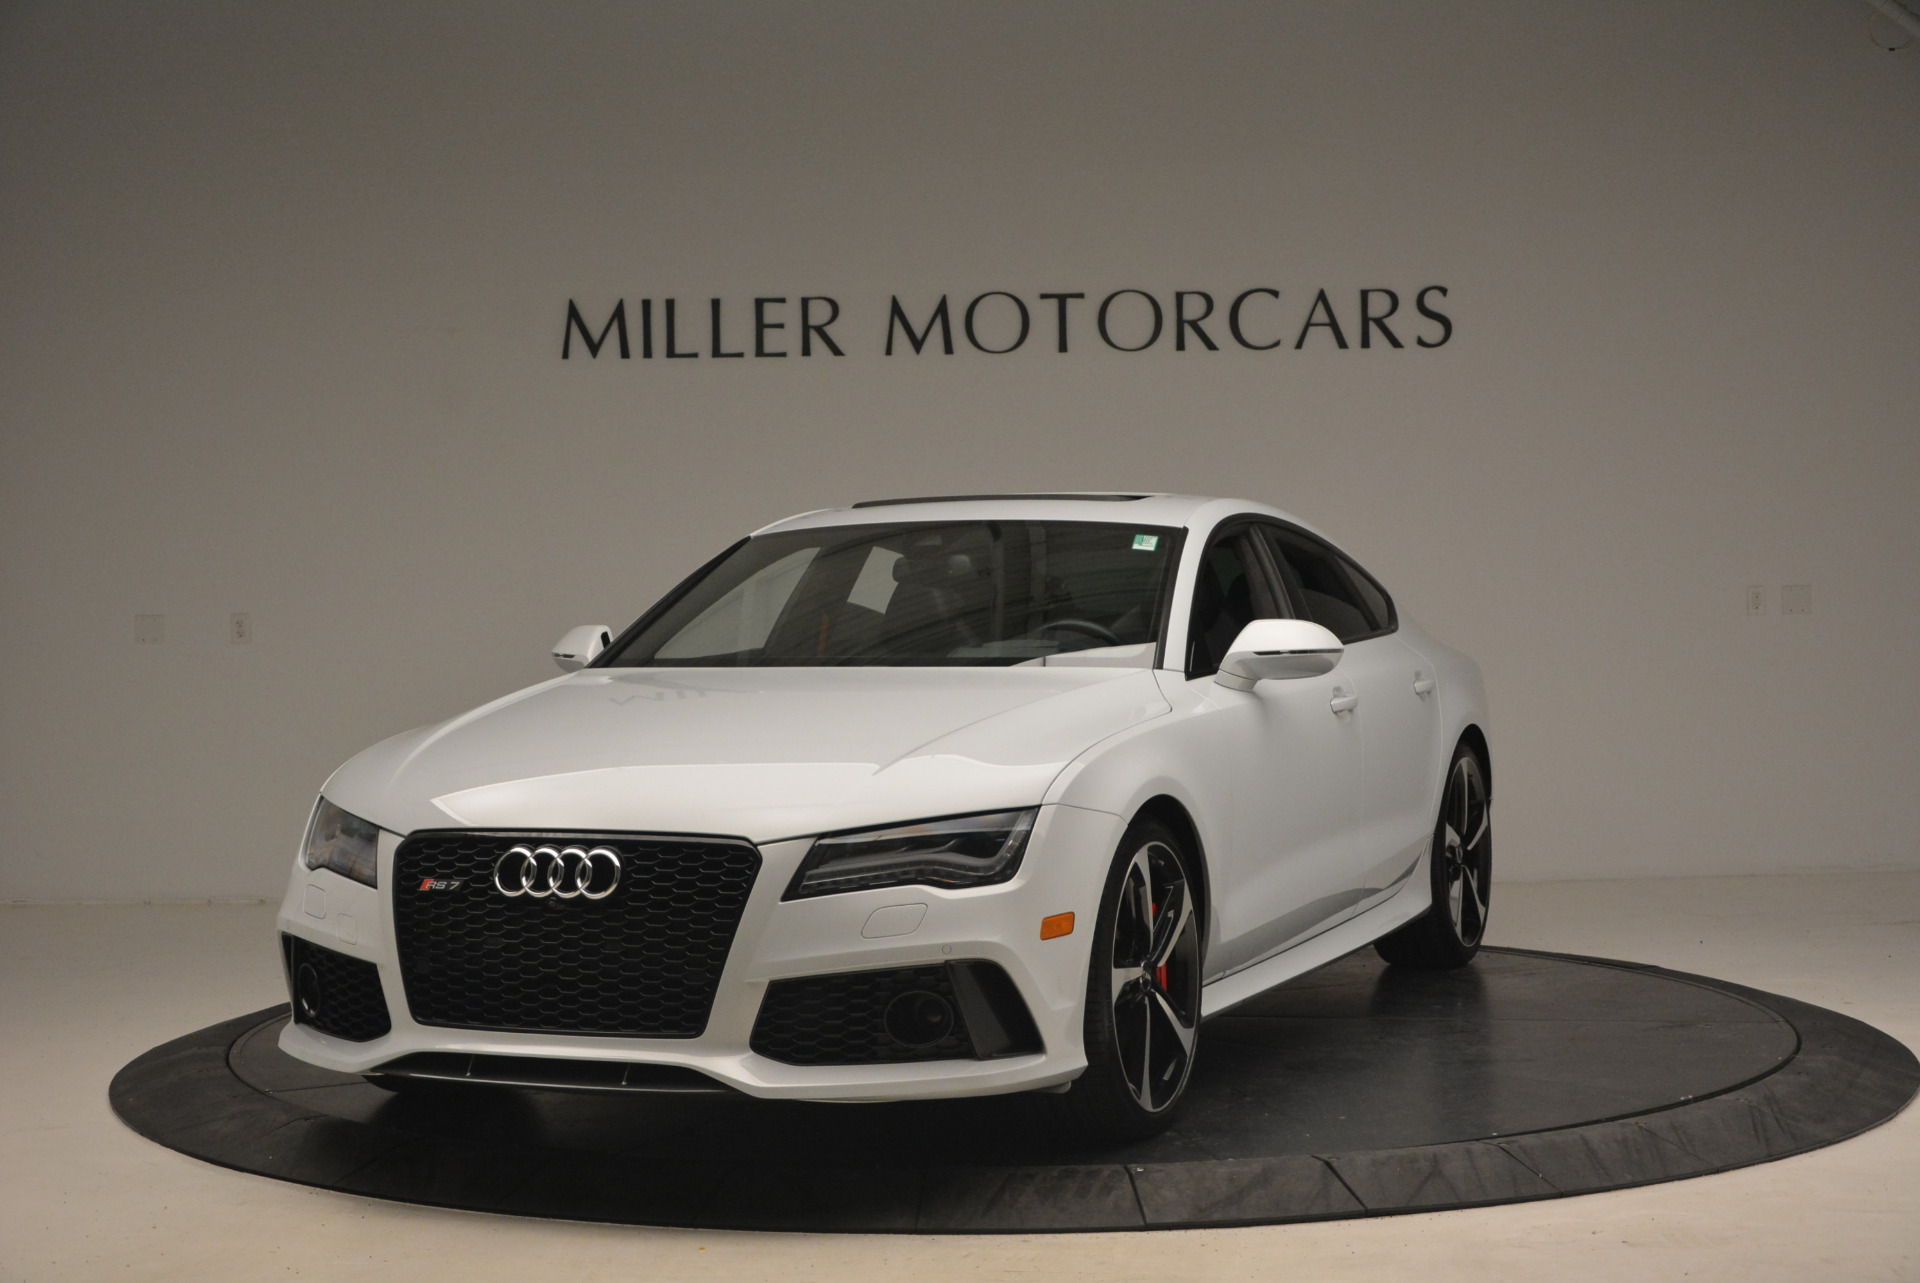 Used 2014 Audi RS 7 4.0T quattro Prestige for sale Sold at McLaren Greenwich in Greenwich CT 06830 1